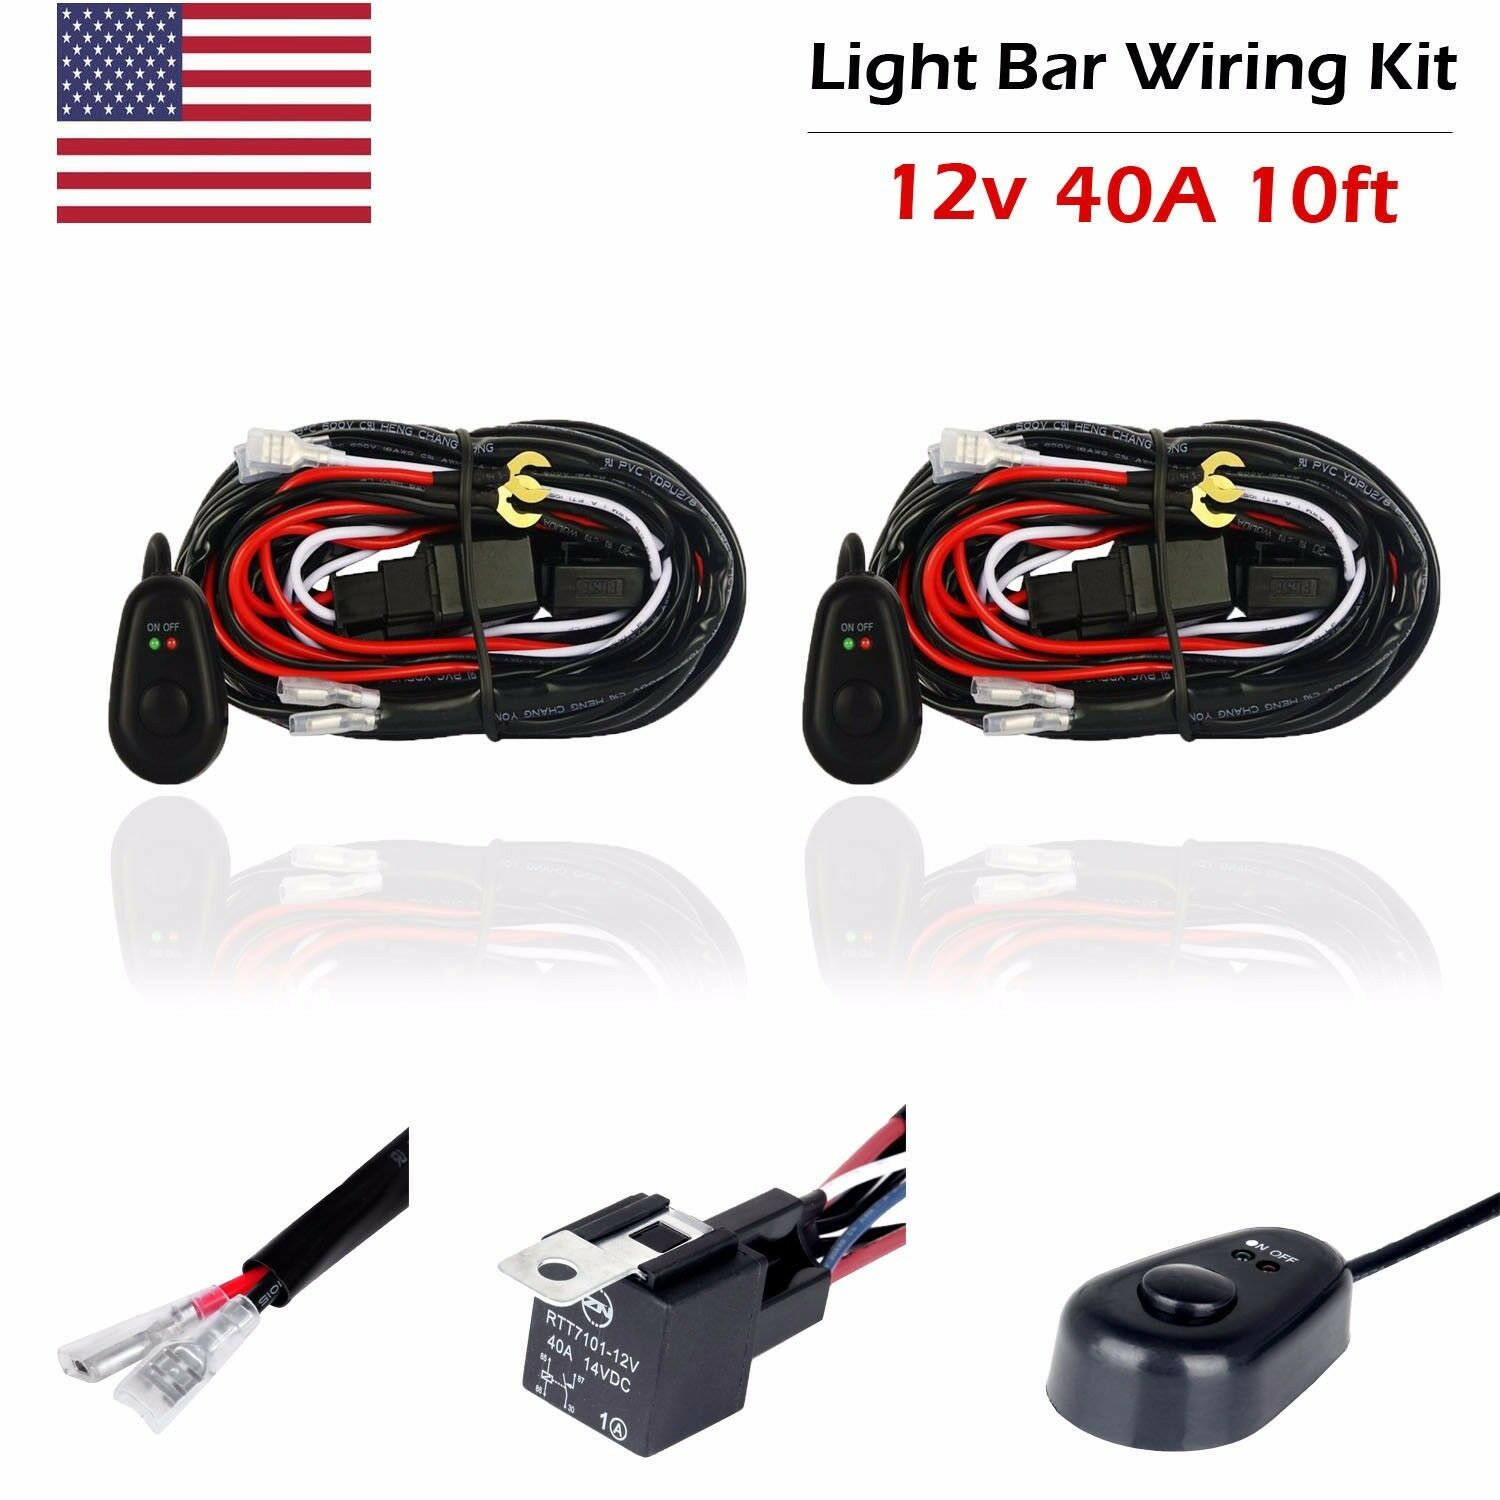 2x Universal Led Light Bar Wiring Harness Kit Offroad Fuse Relay 40 Amp On Off Switch 1 Of 6free Shipping 12v 40a